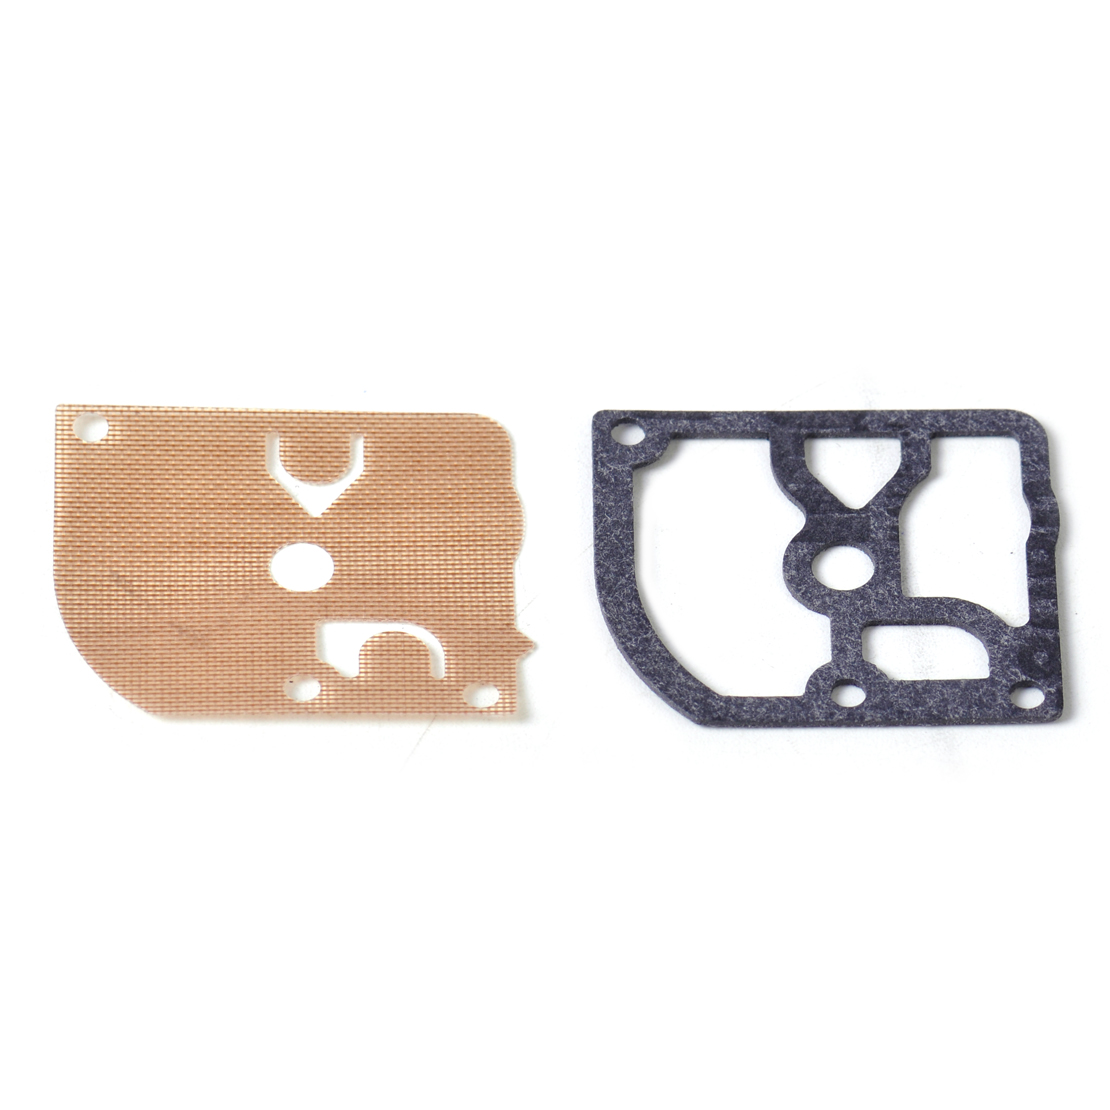 Carburetor Repair Rebuild Gasket Kit Fit For Stihl 024 Ms240 026 Ms260 Chainsaw 728360607430